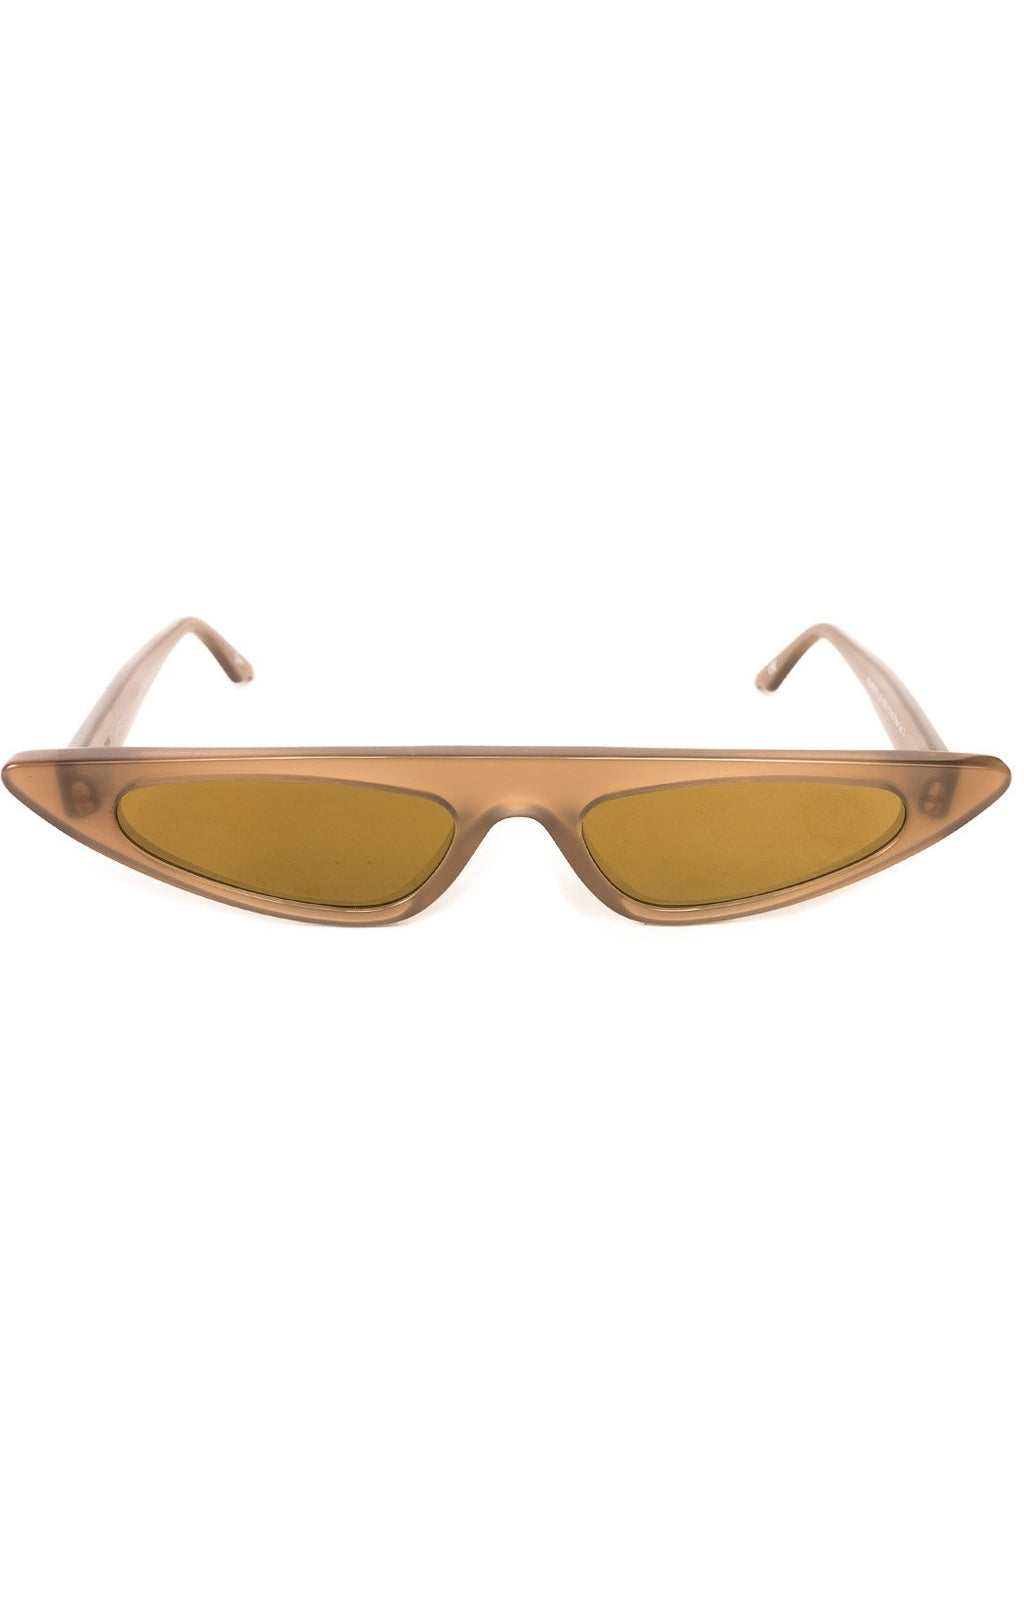 "Front view of ANDY WOLF Sunglasses  Size: 6"" W x 1.25"" H"